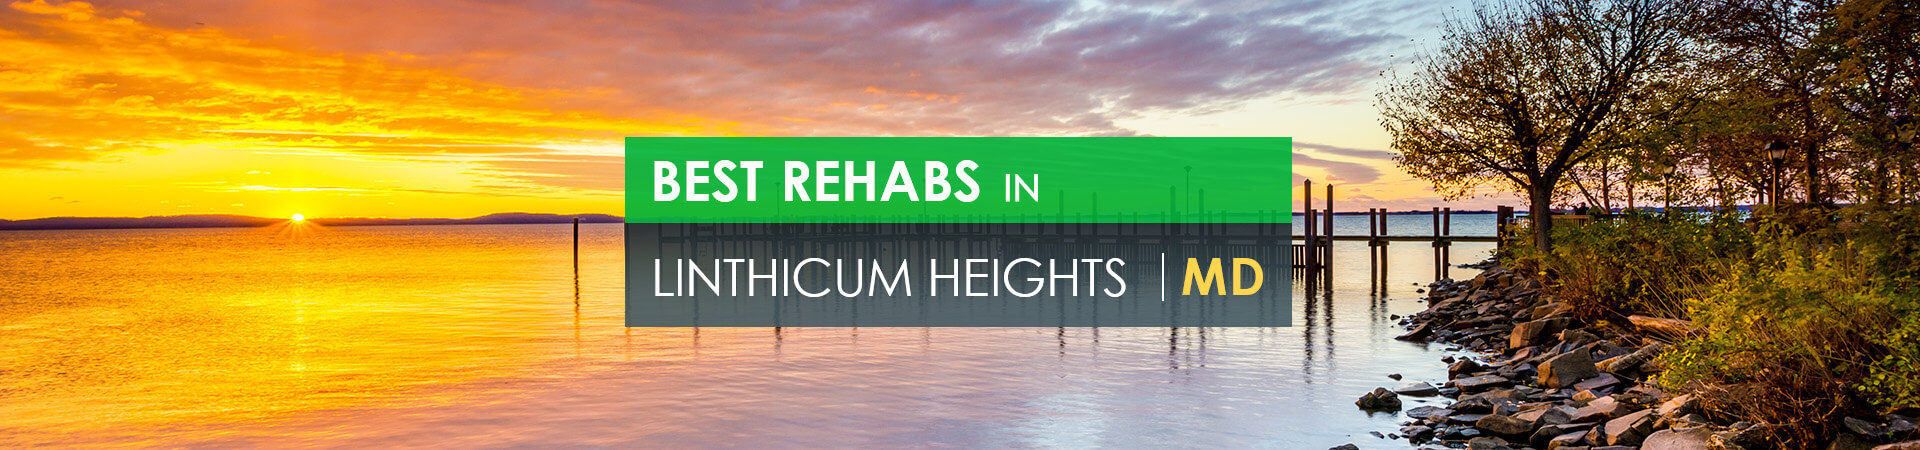 Best rehabs in Linthicum Heights, MD